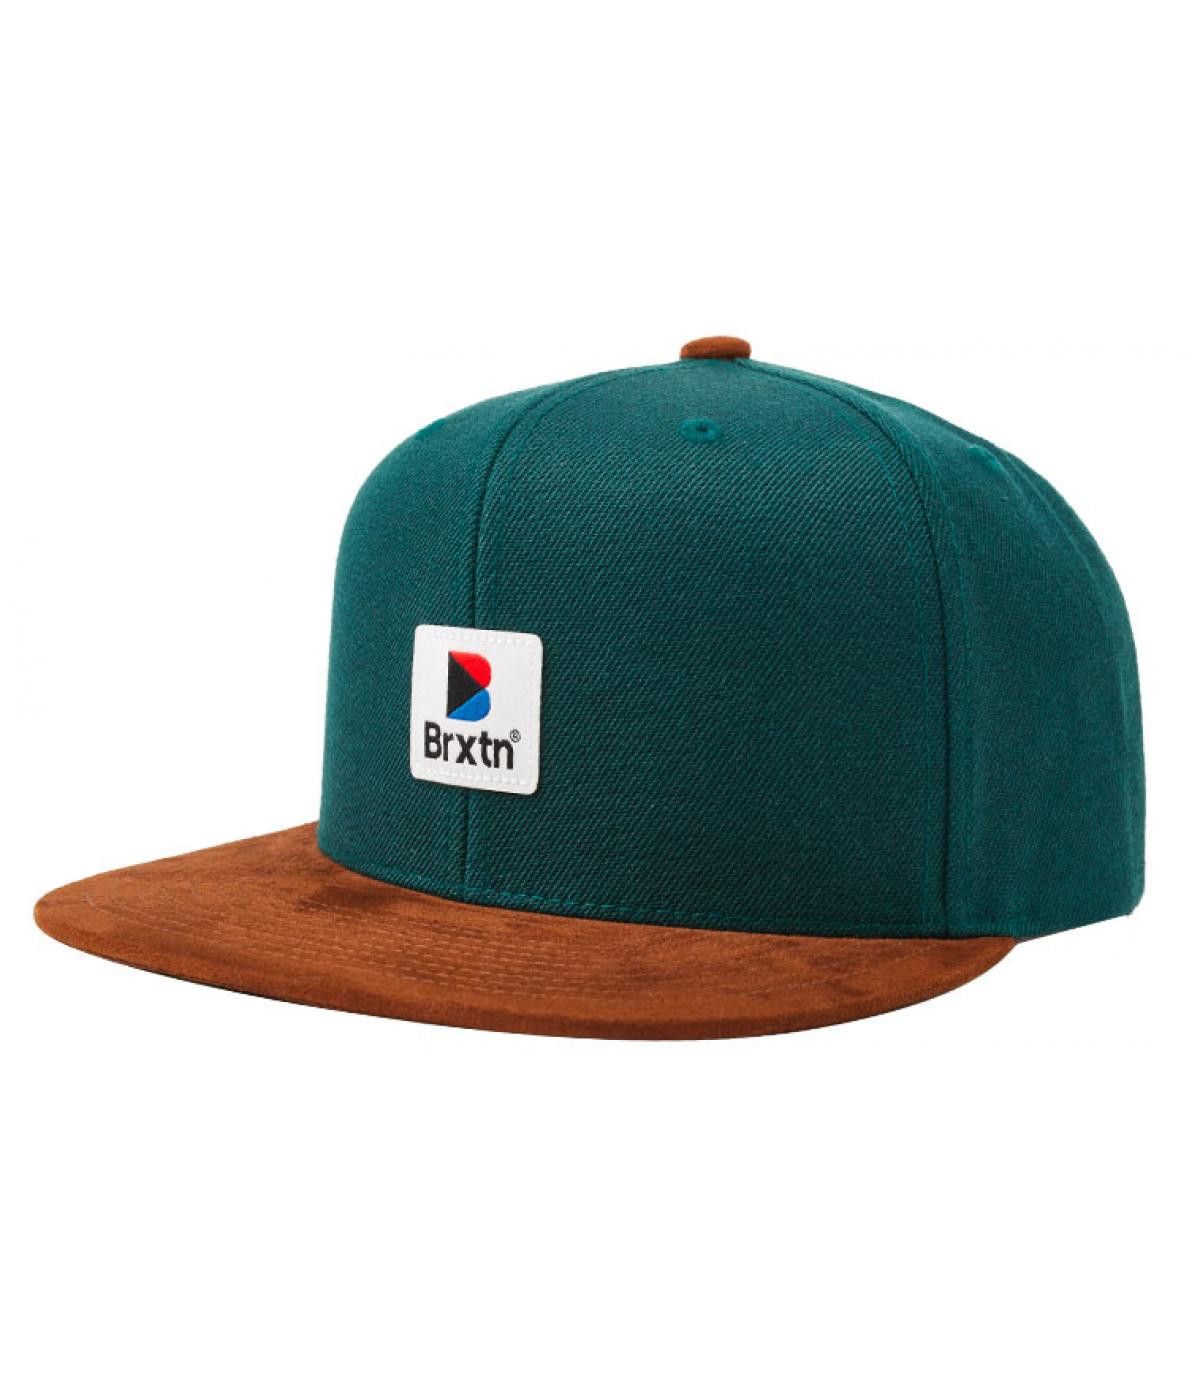 Détails Stowell MP Snapback pine brown - image 2